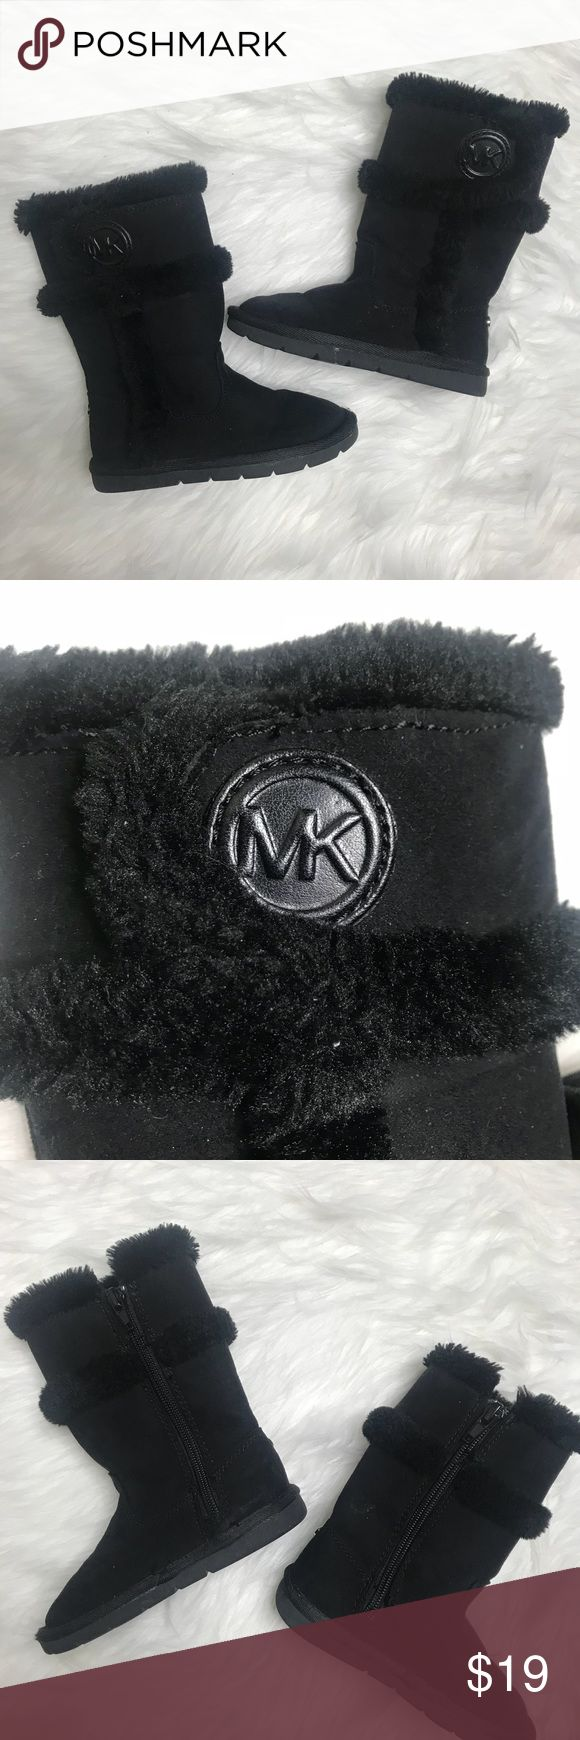 Little girl Michael Kors Boots Good condition size 7 in little girls smoke free home MICHAEL Michael Kors Shoes Boots